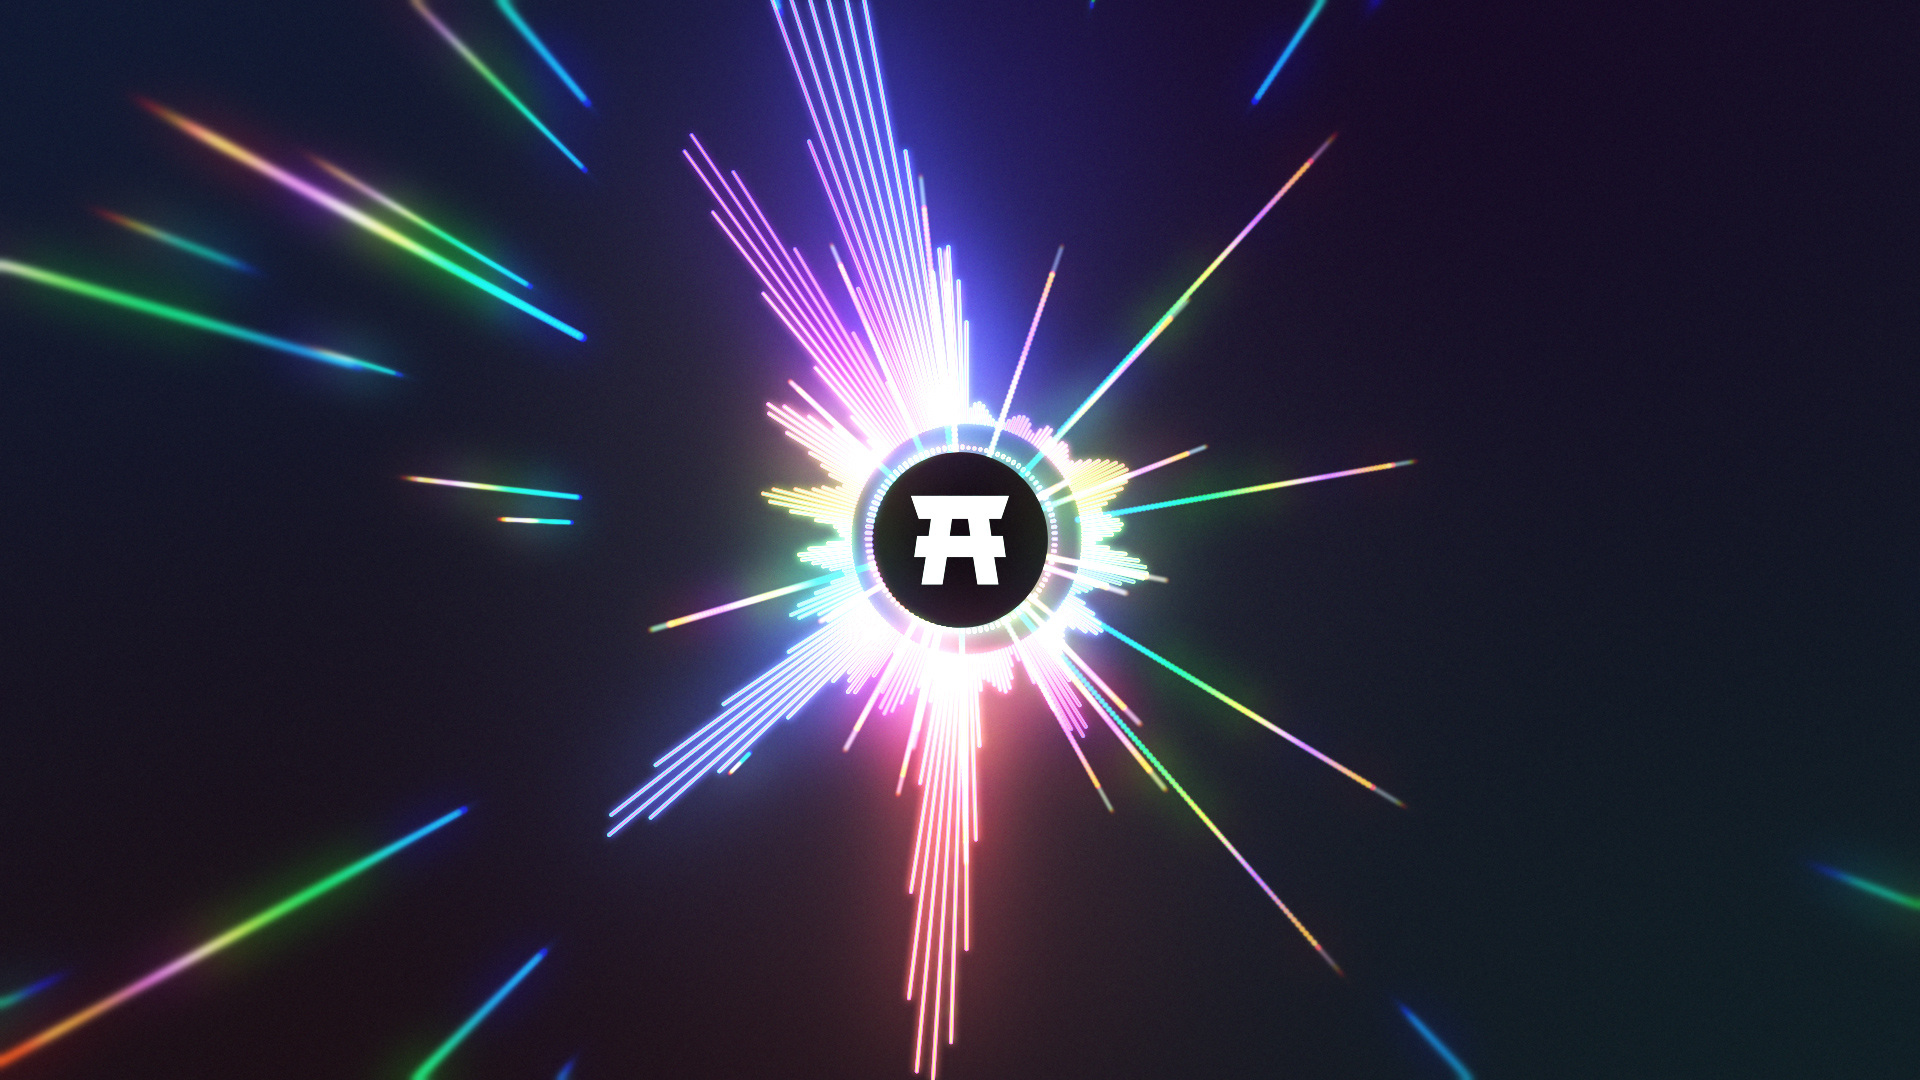 Audio Reacting Spectrum In After Effects